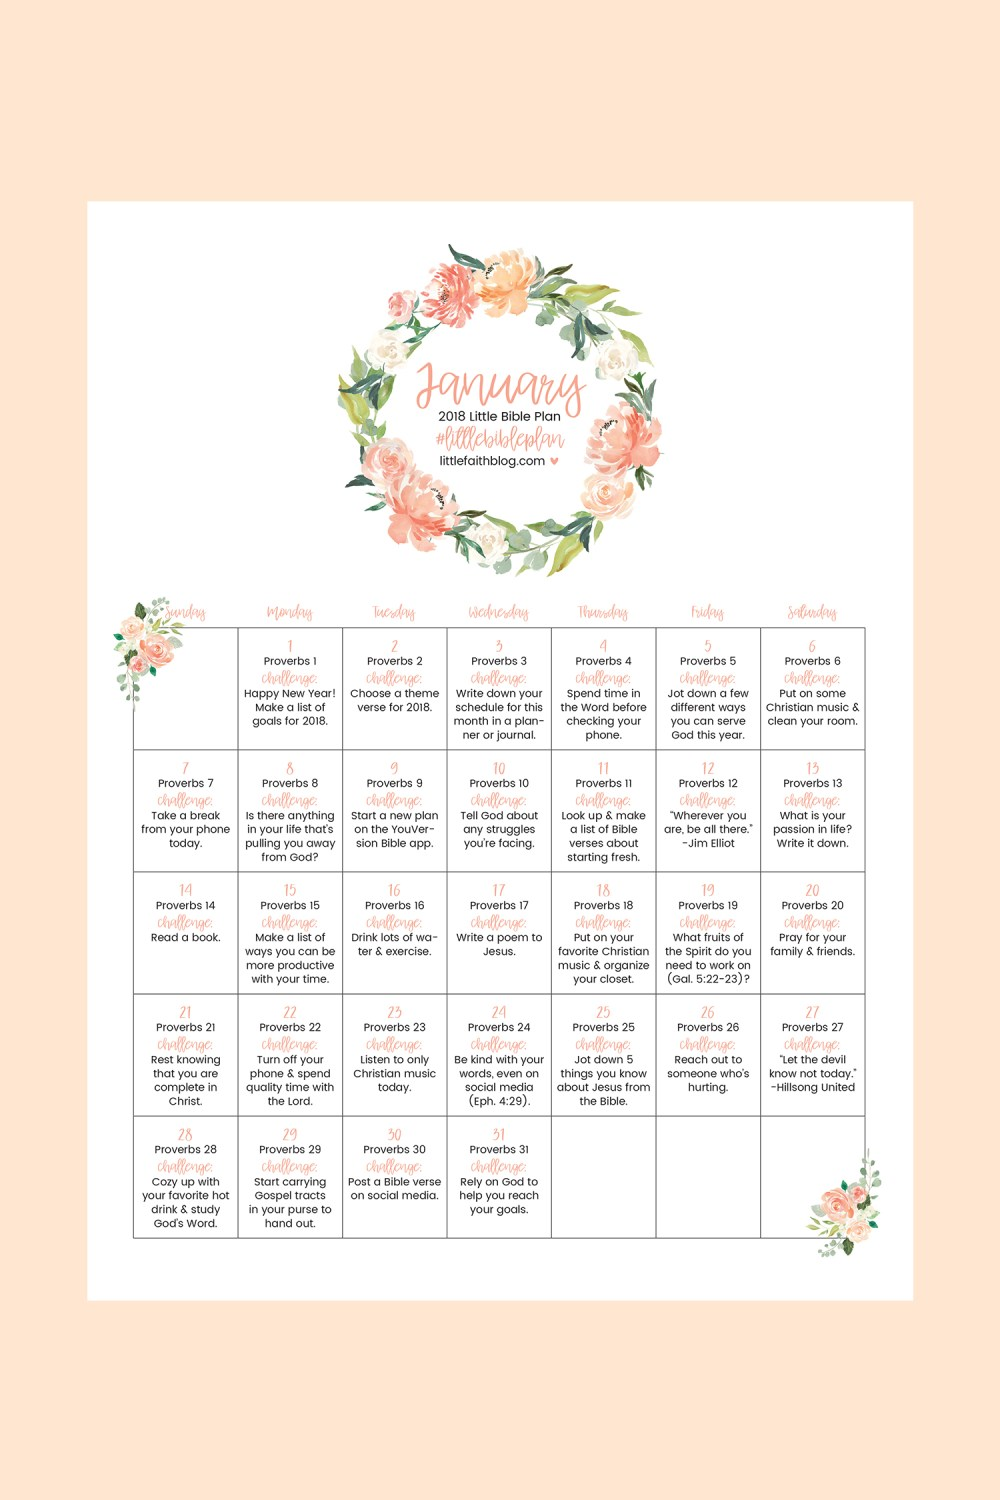 January 2018 Bible Reading Plan + 31 Day Challenge!